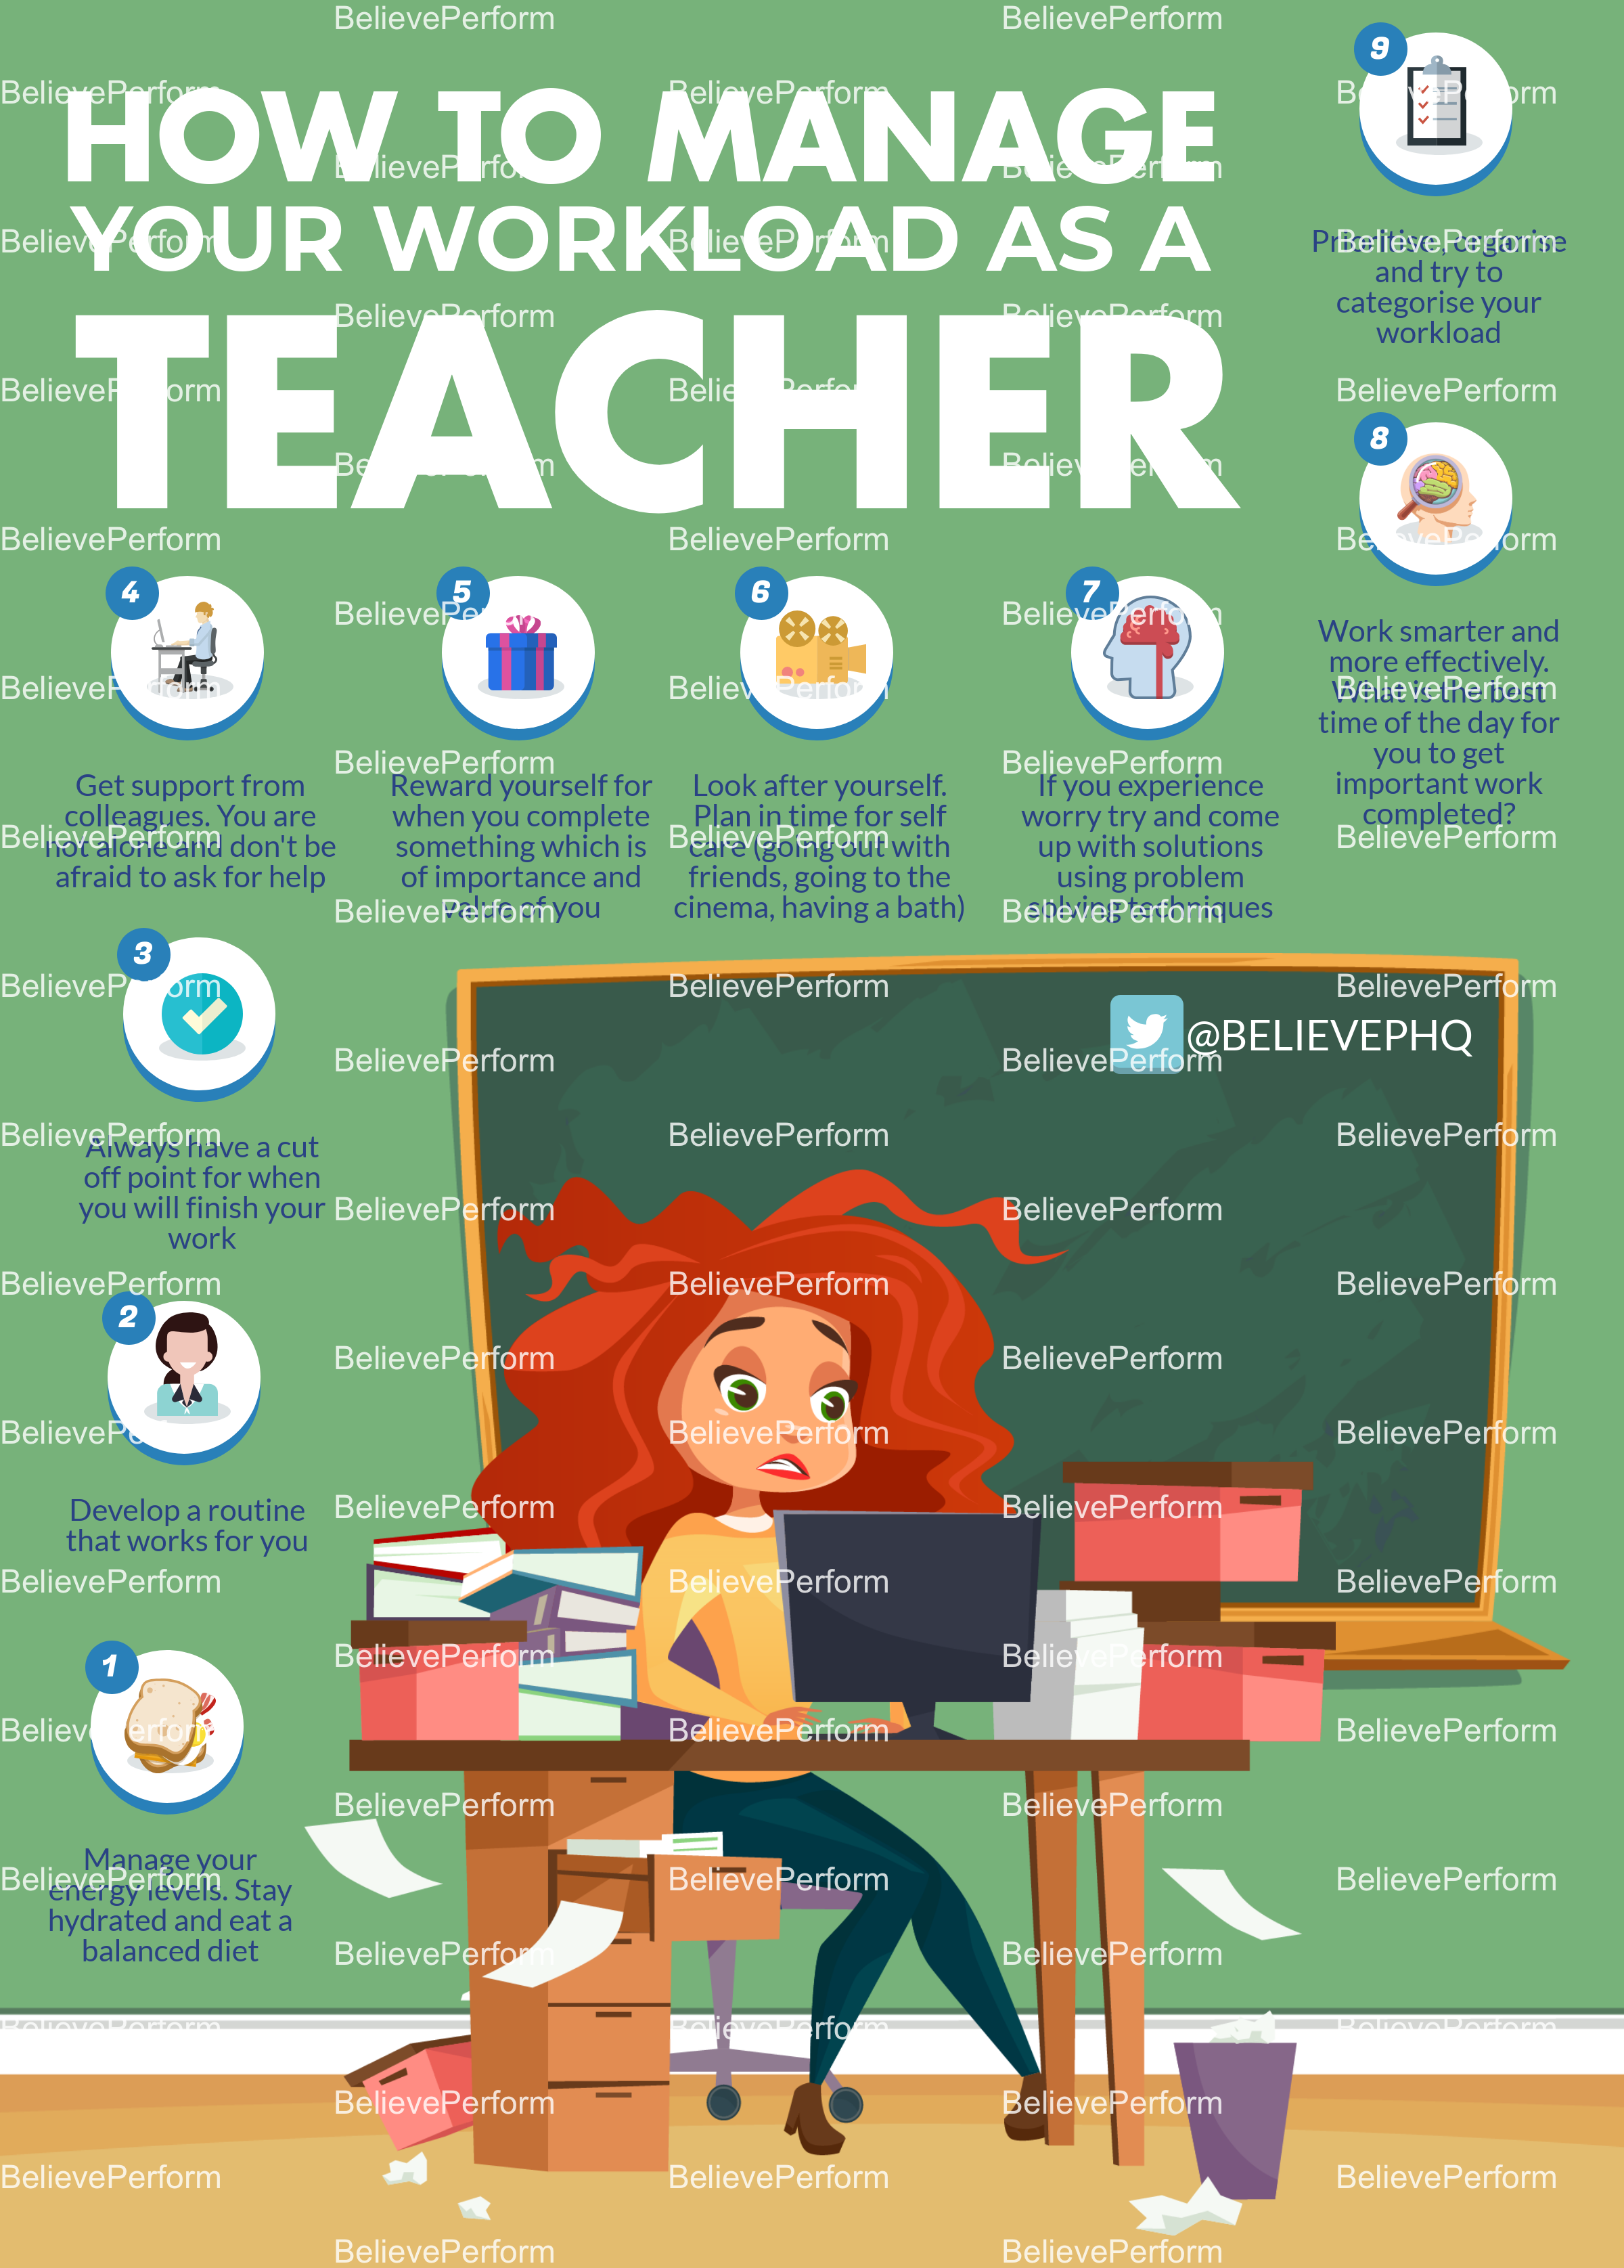 How to manage your workload as a teacher